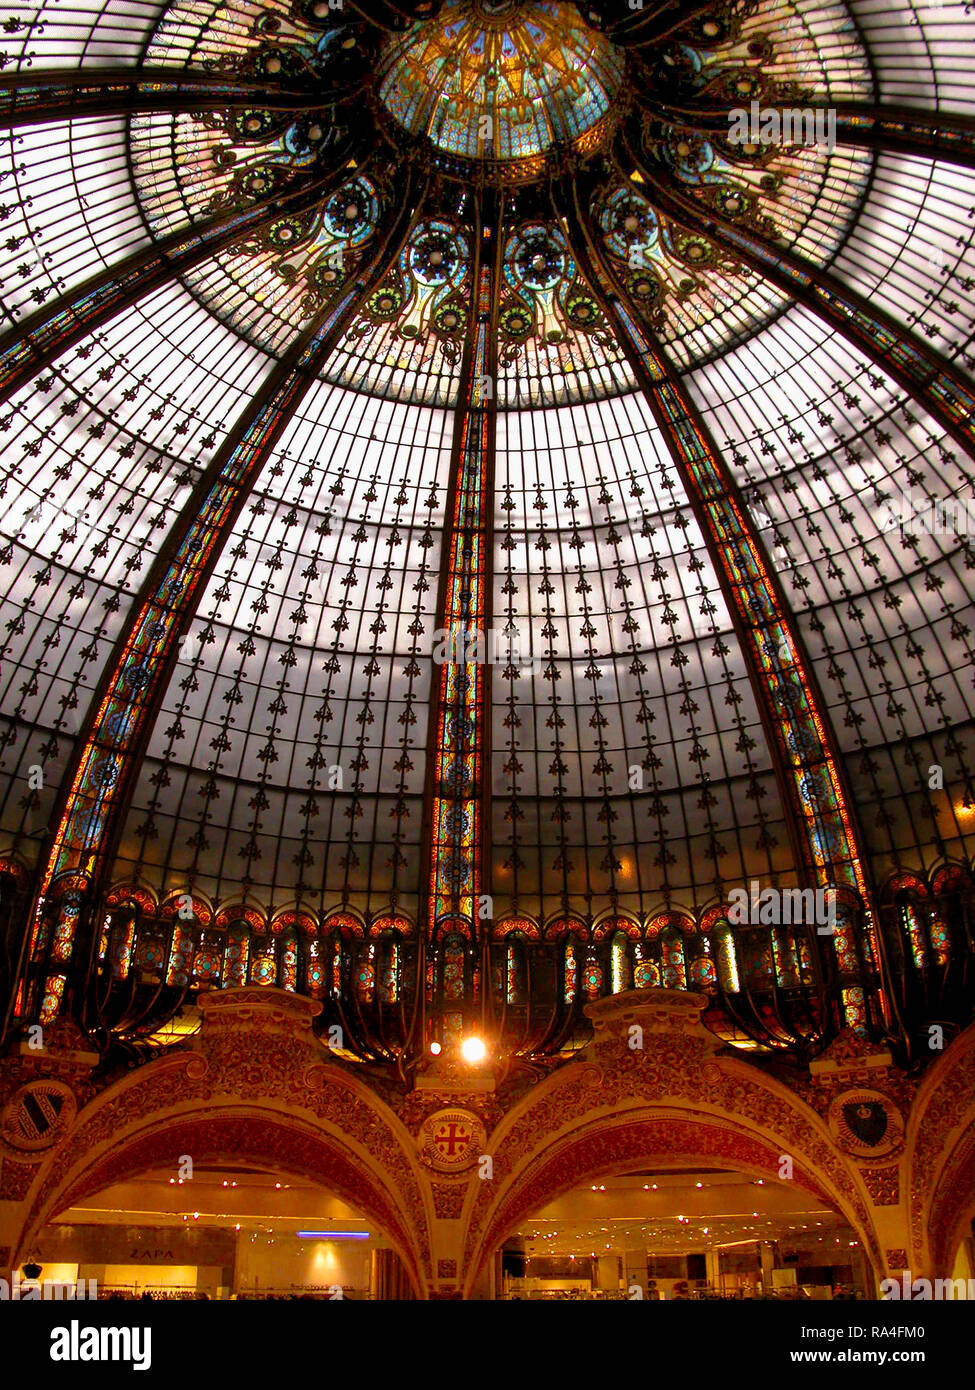 Galaries Lafayette and the stunning stained glass cuplola, 40 Boulevard Haussmann, Paris, France - Stock Image